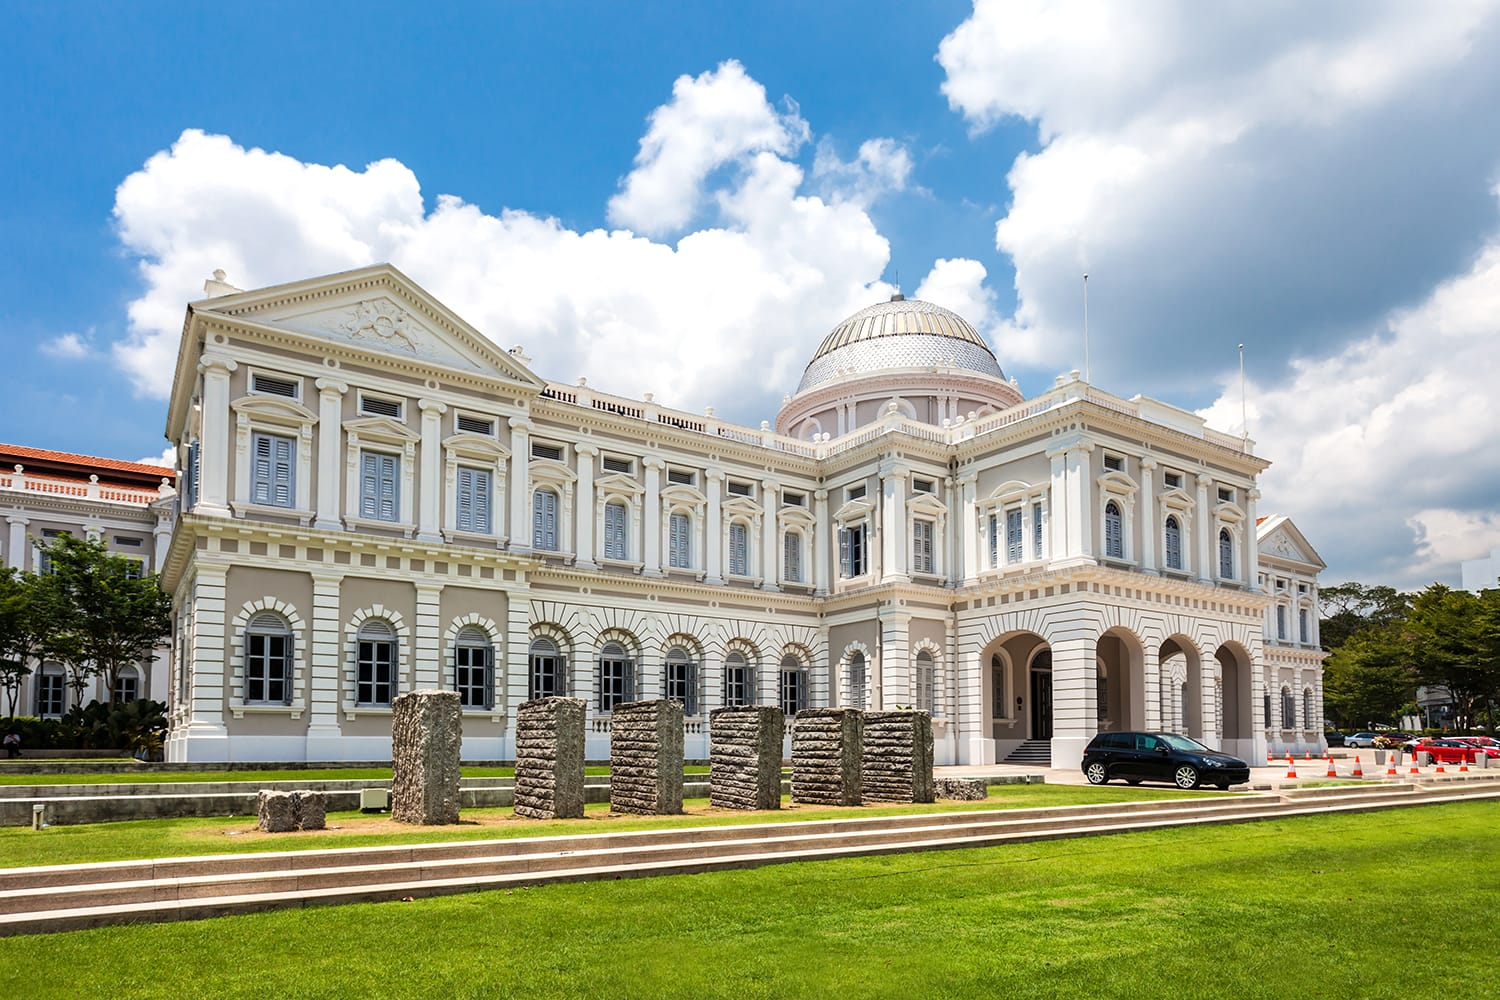 The National Museum of Singapore is a national museum in Singapore and the oldest museum in Singapore.